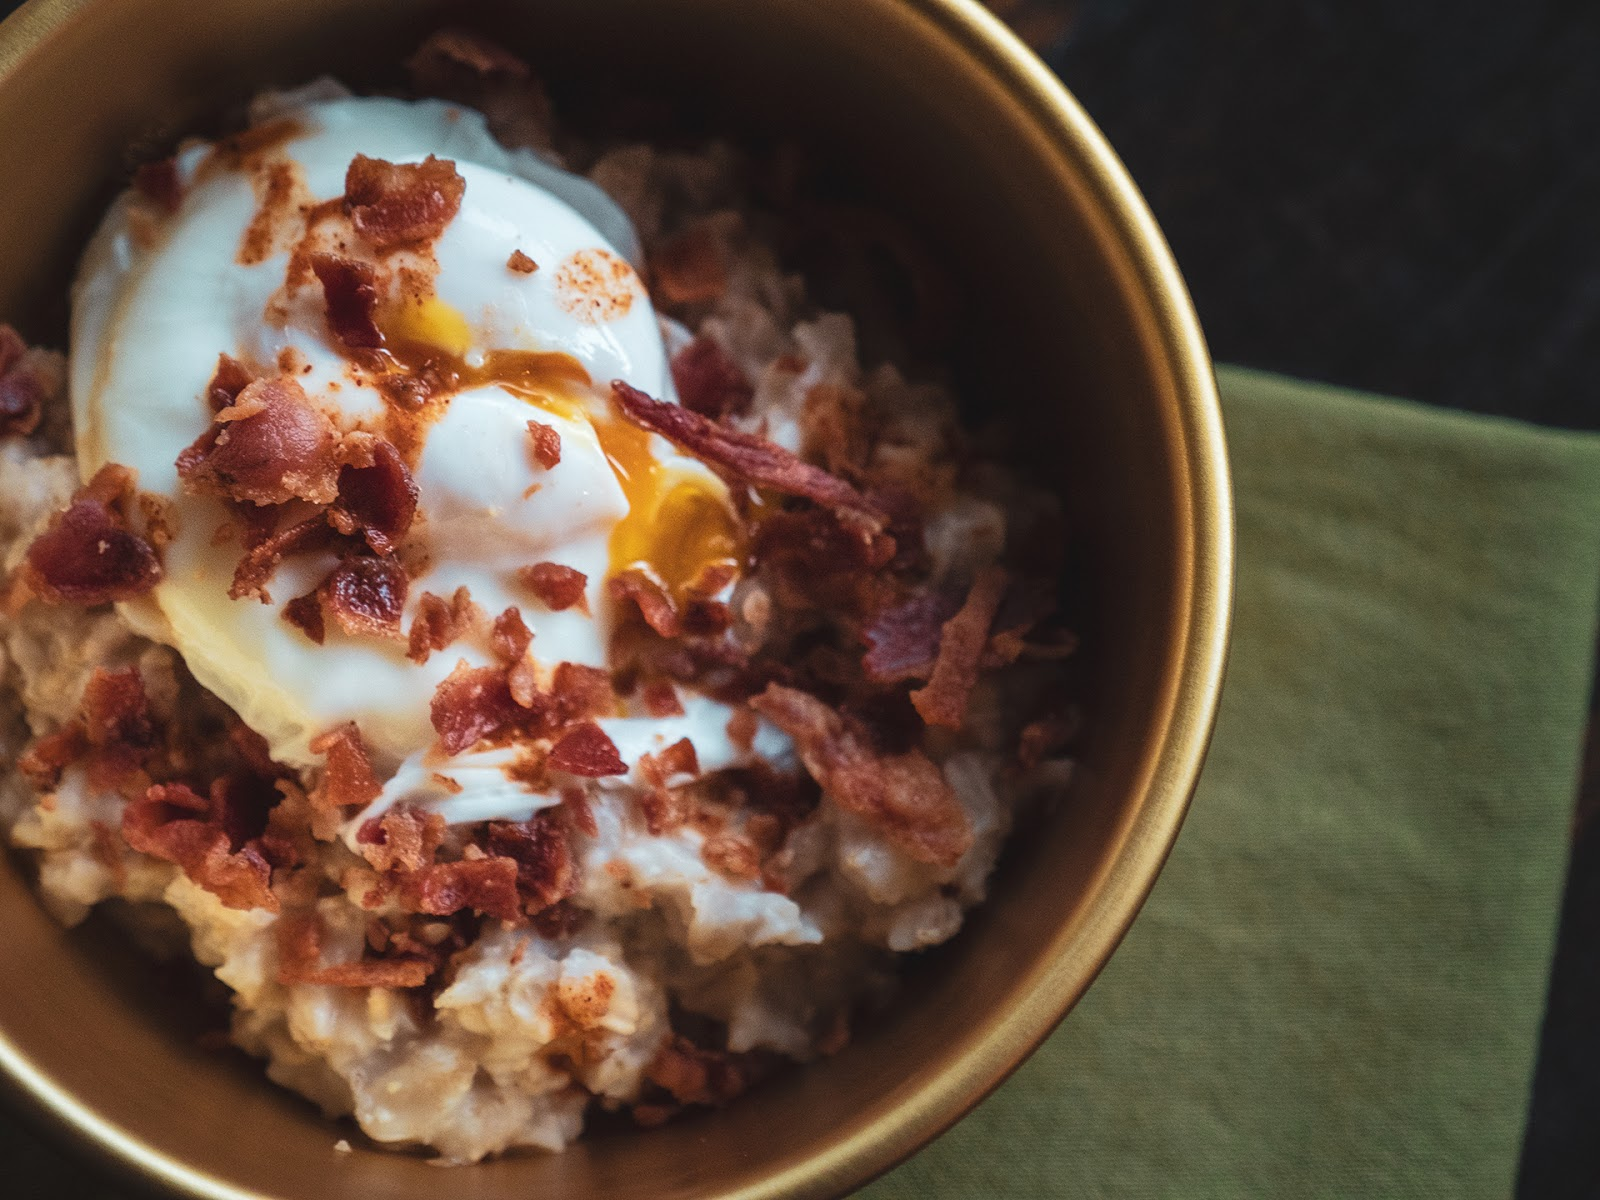 Savory Oatmeal with Poached Egg and Bacon | Local Food Rocks